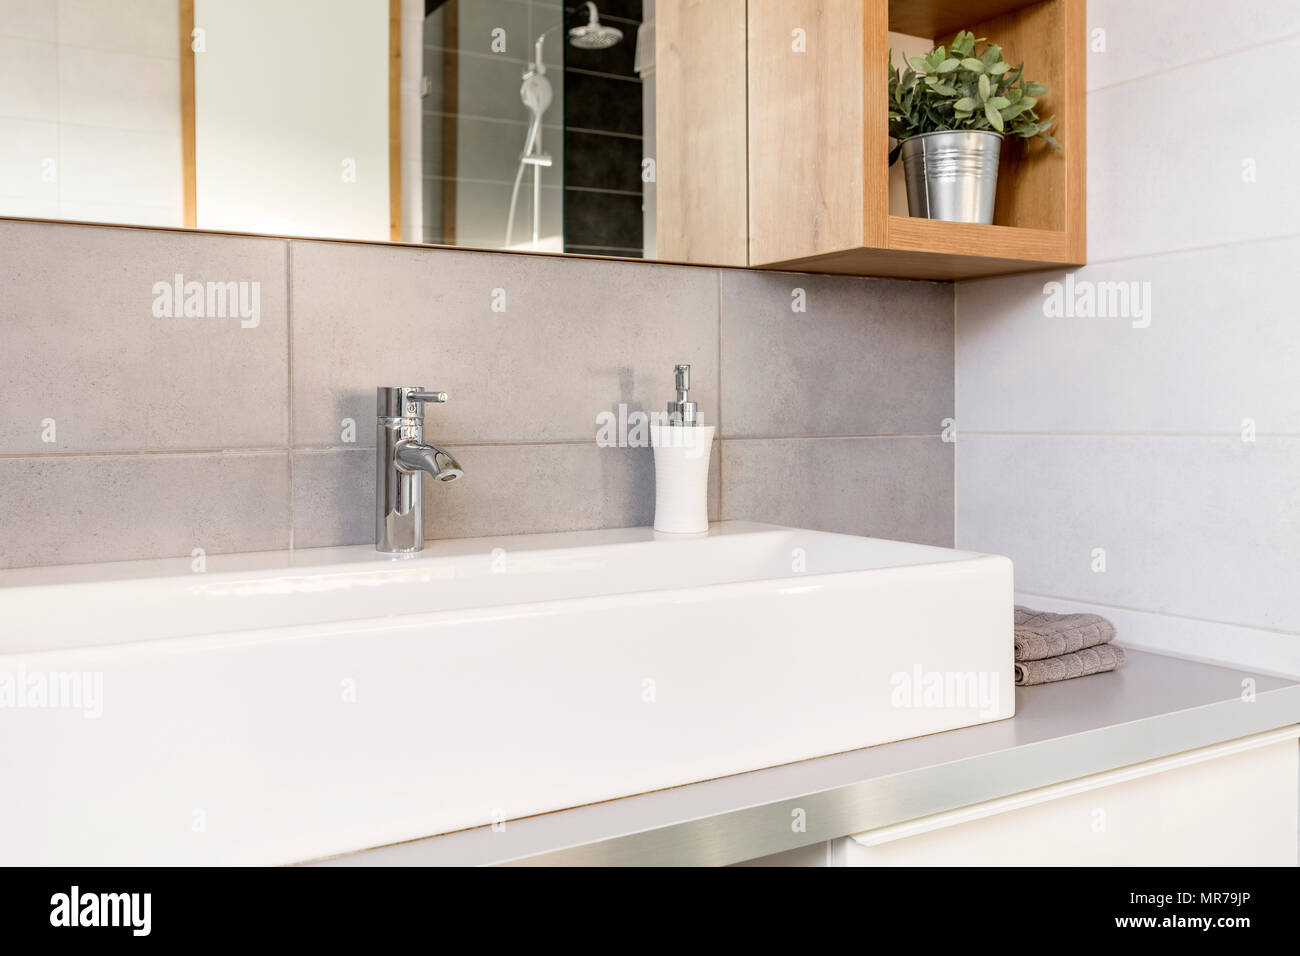 Grey and white bathroom with countertop basin and mirror Stock Photo ...